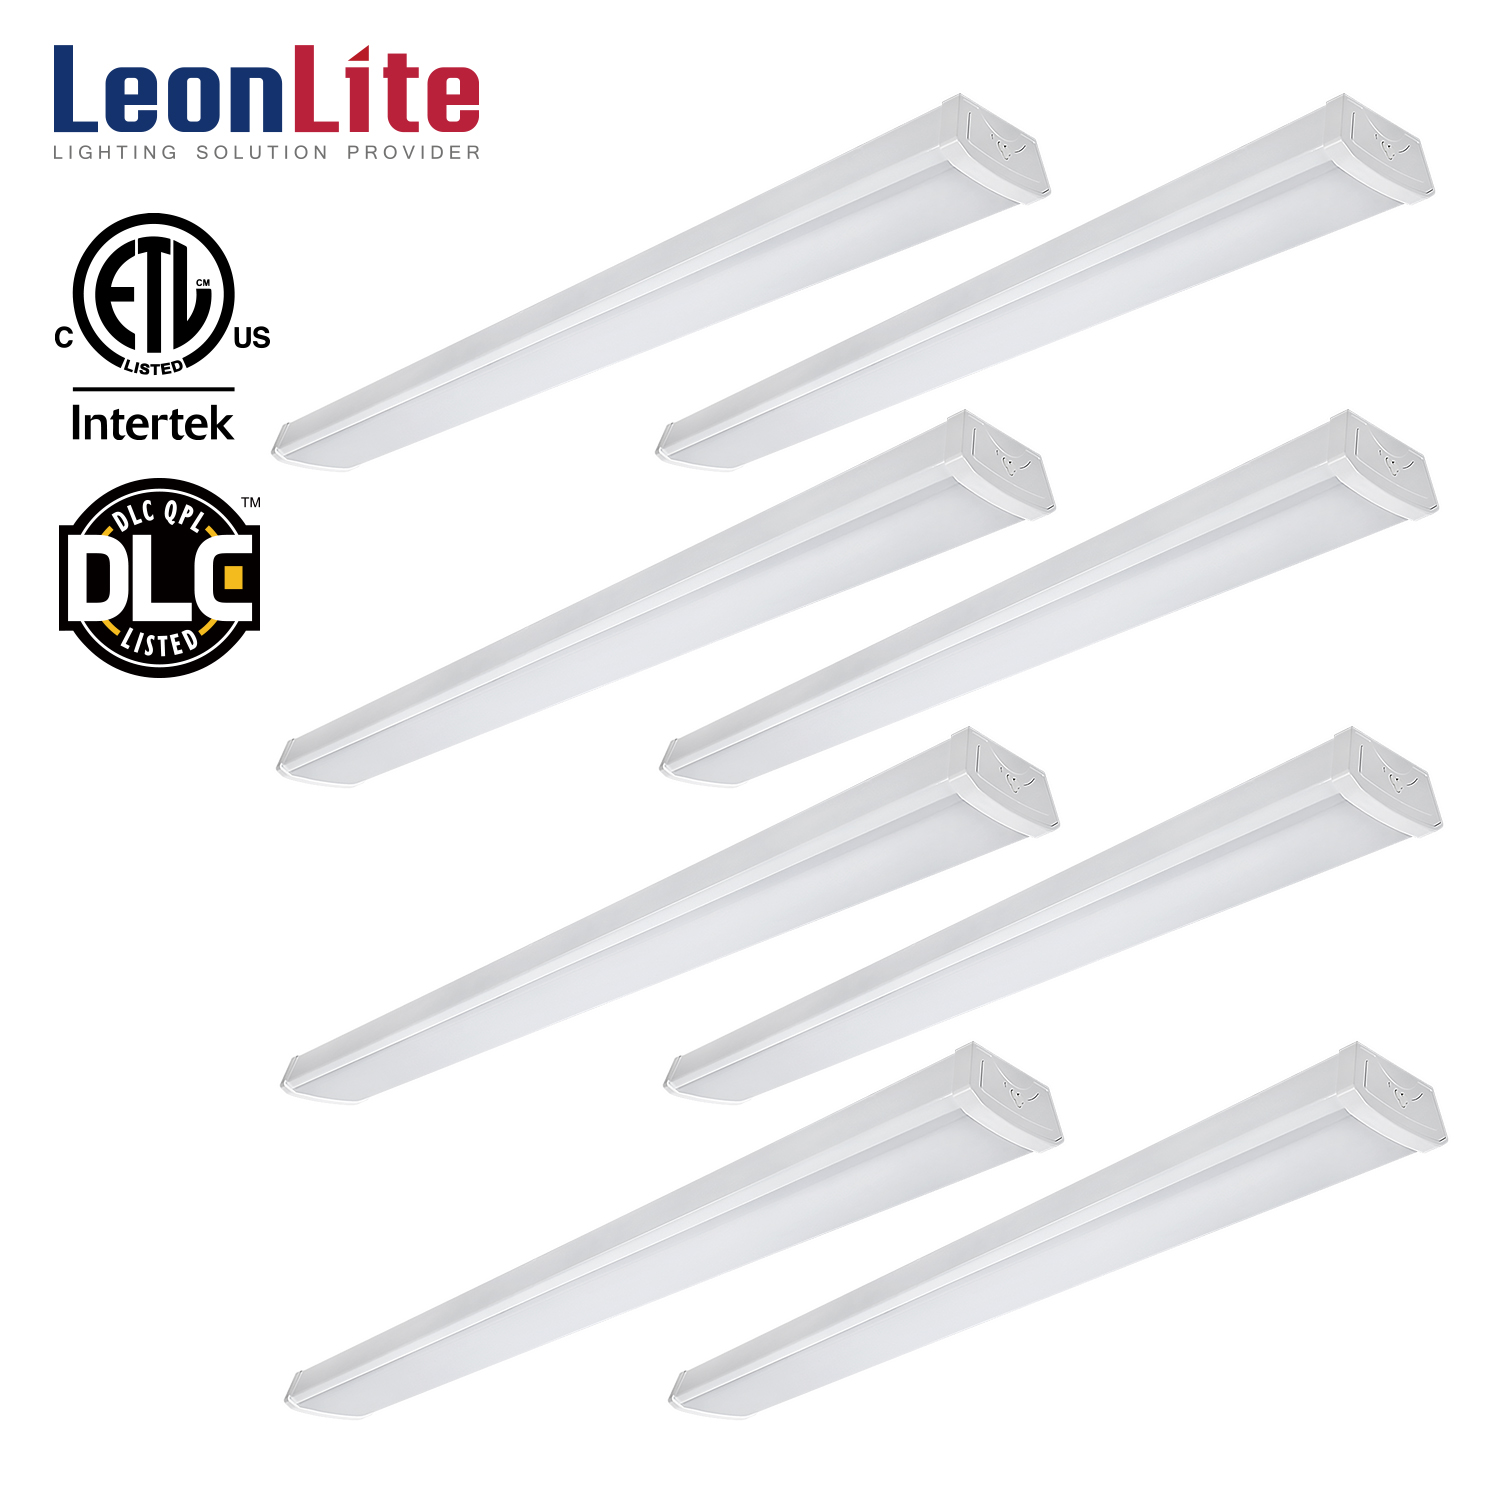 LEONLITE 8 Pack 4ft 40W LED Utility Shop Light For Garage